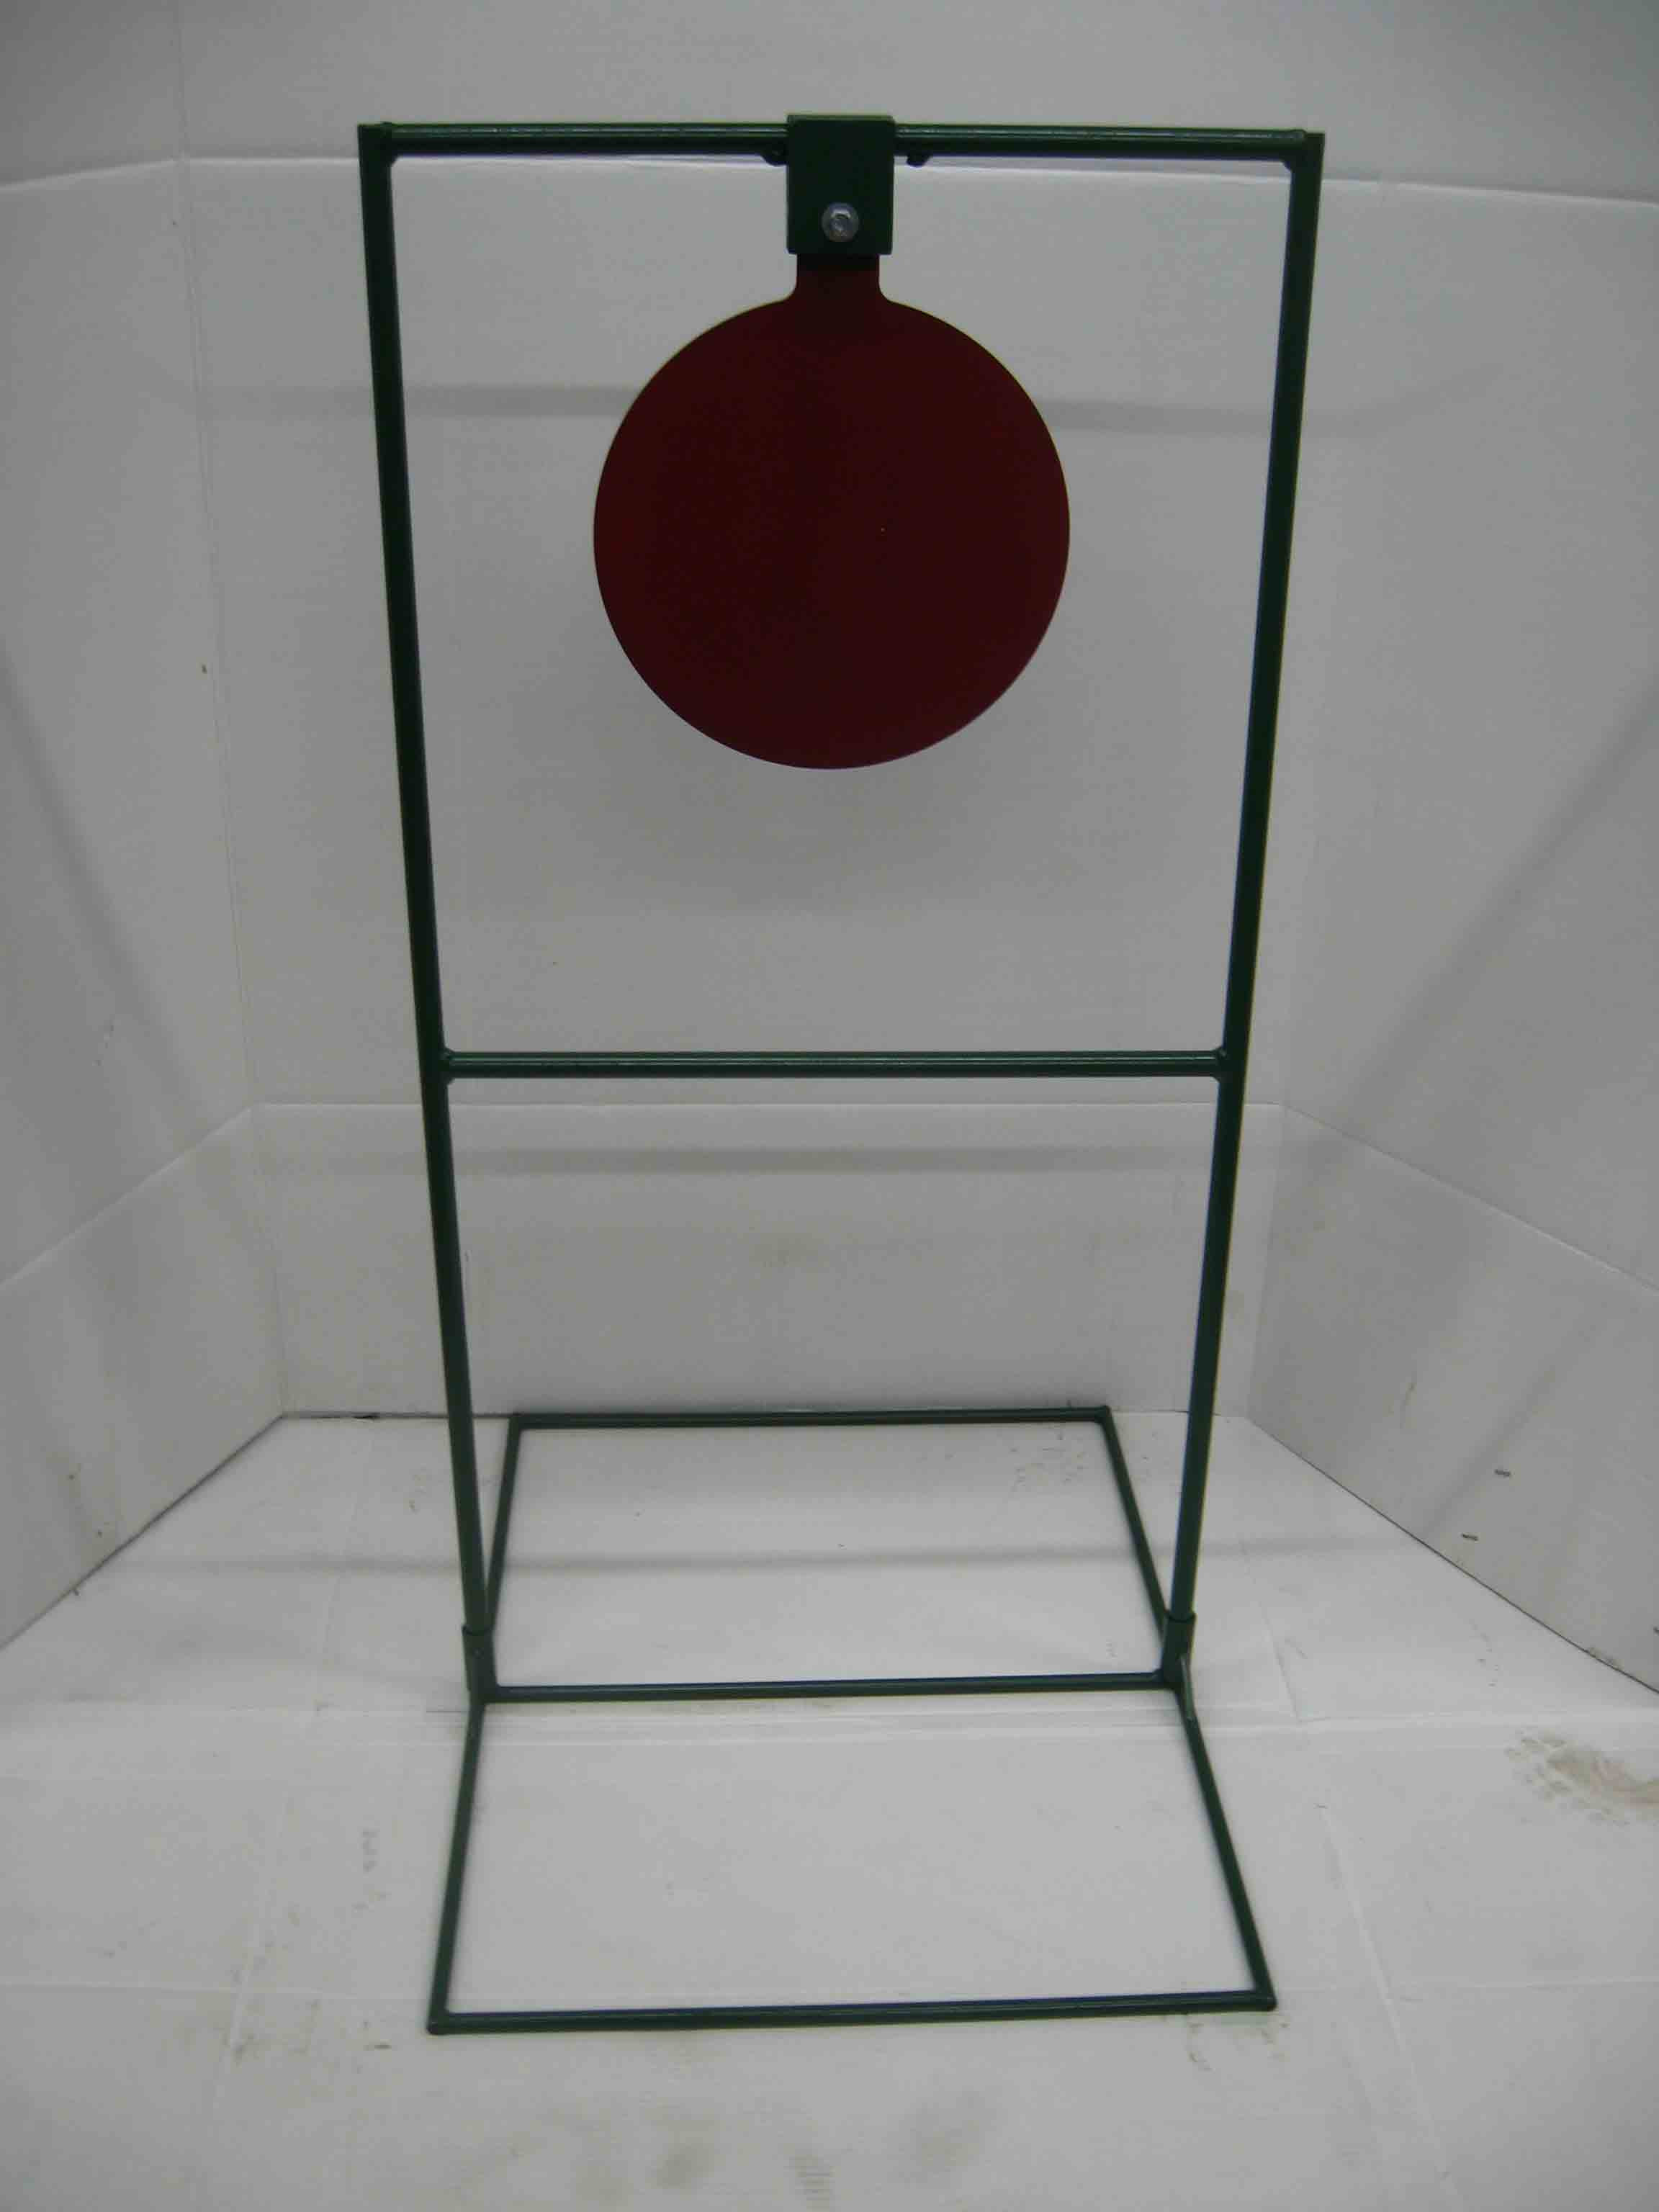 "12"" Circle Gong Tall Boy Target Stands & Reset Targets"